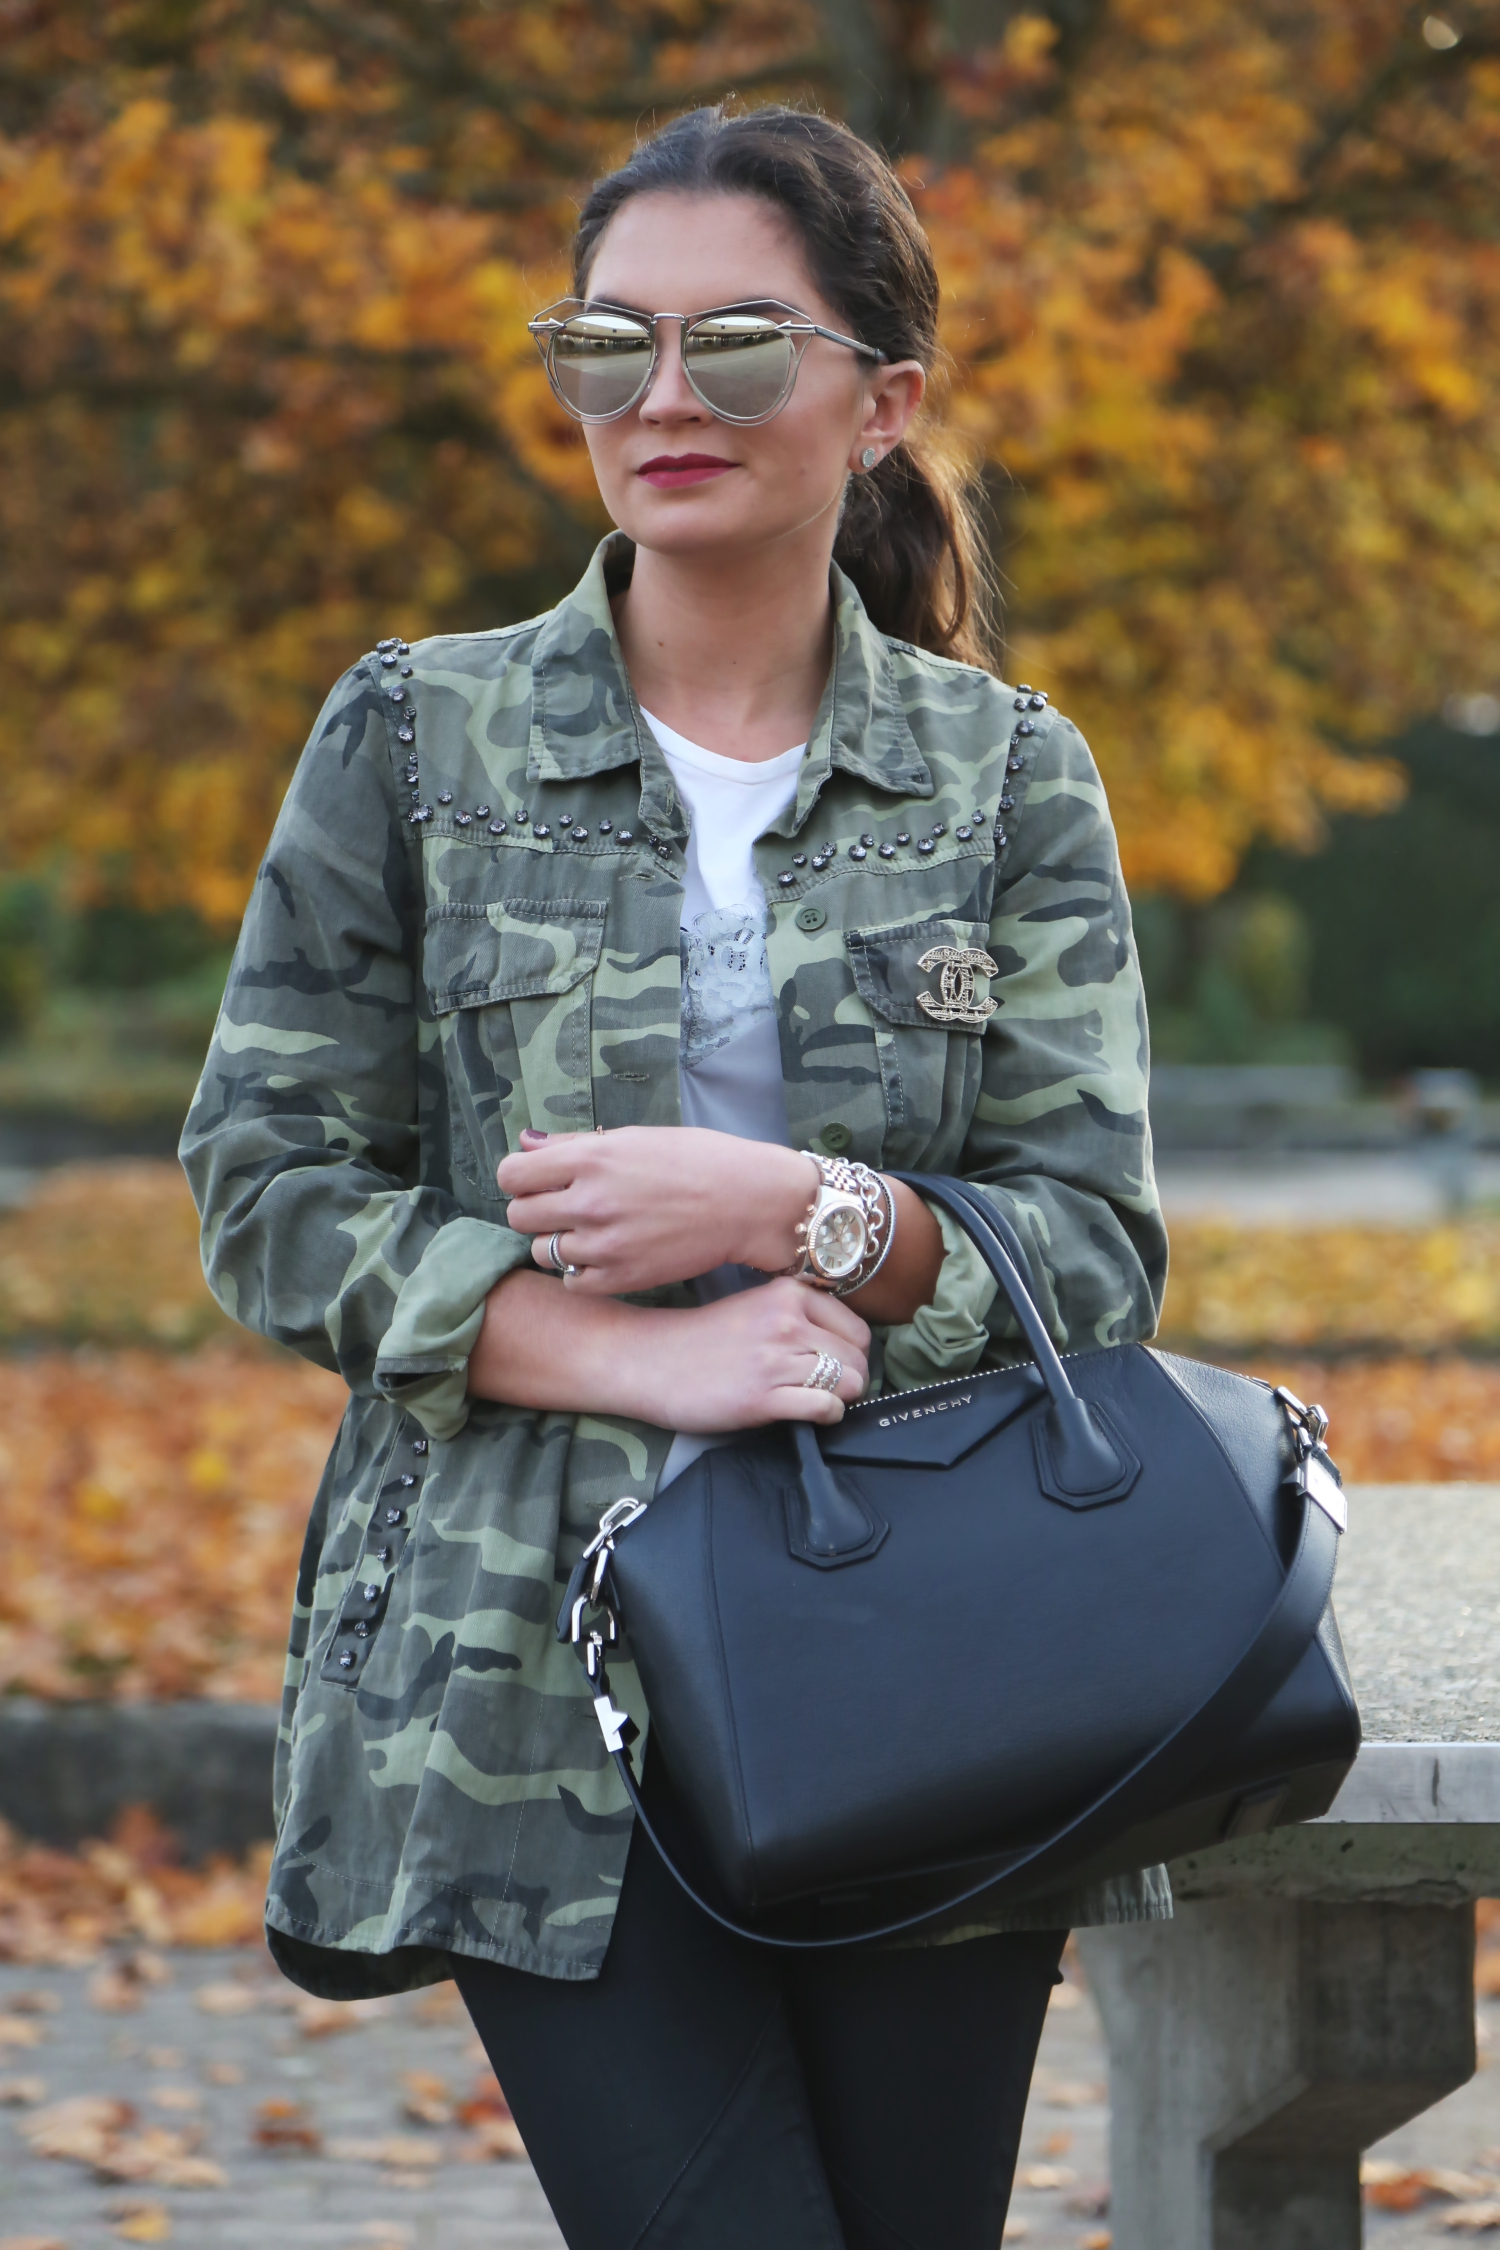 outfit-givenchy-bag-karen-walker-sunglasses-parka-military